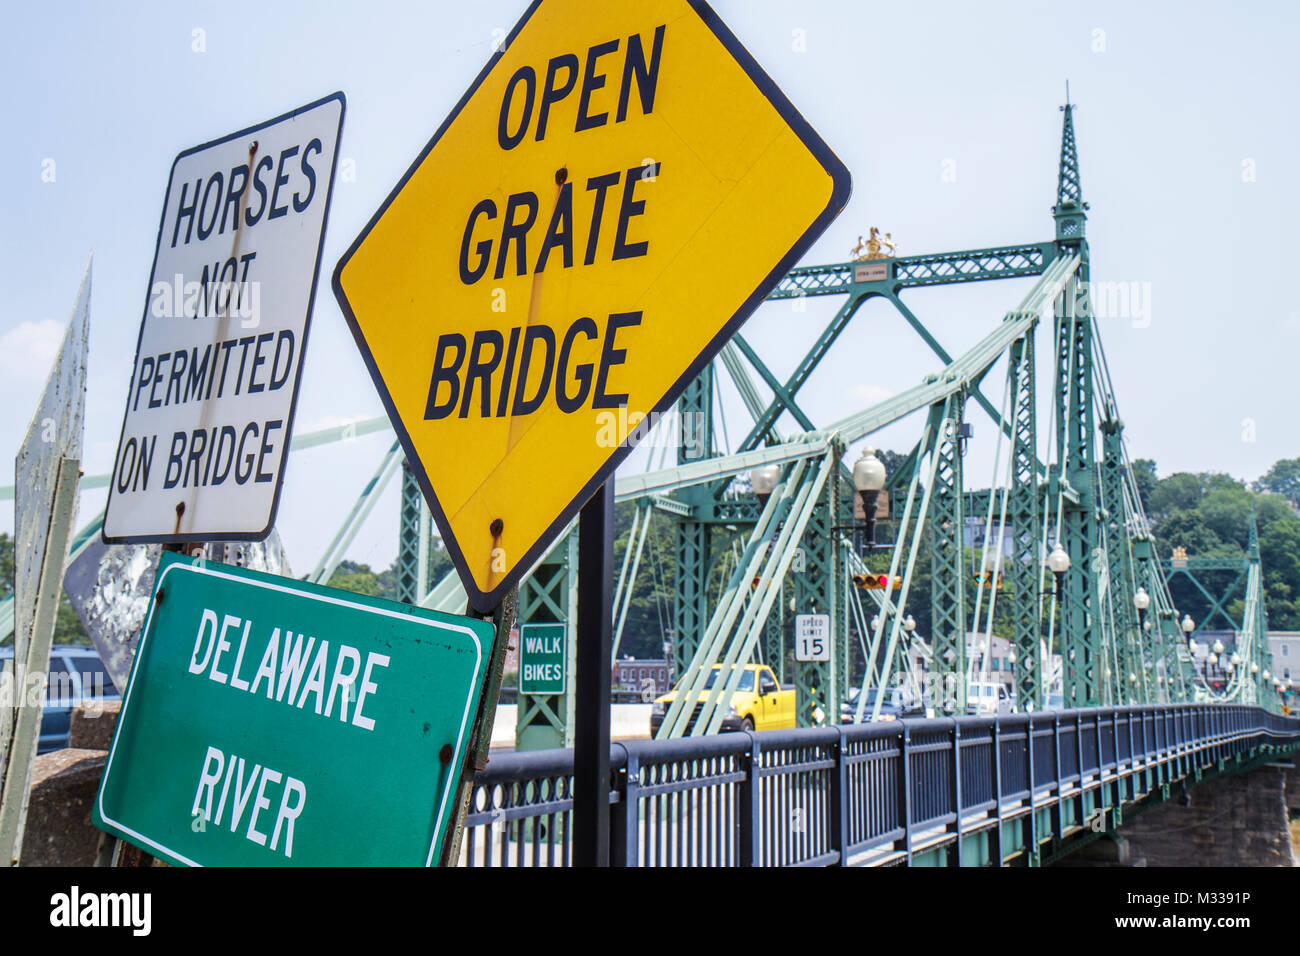 Pennsylvania Easton Delaware River Northampton Street Bridge historic traffic signs open grate horses not permitted - Stock Image